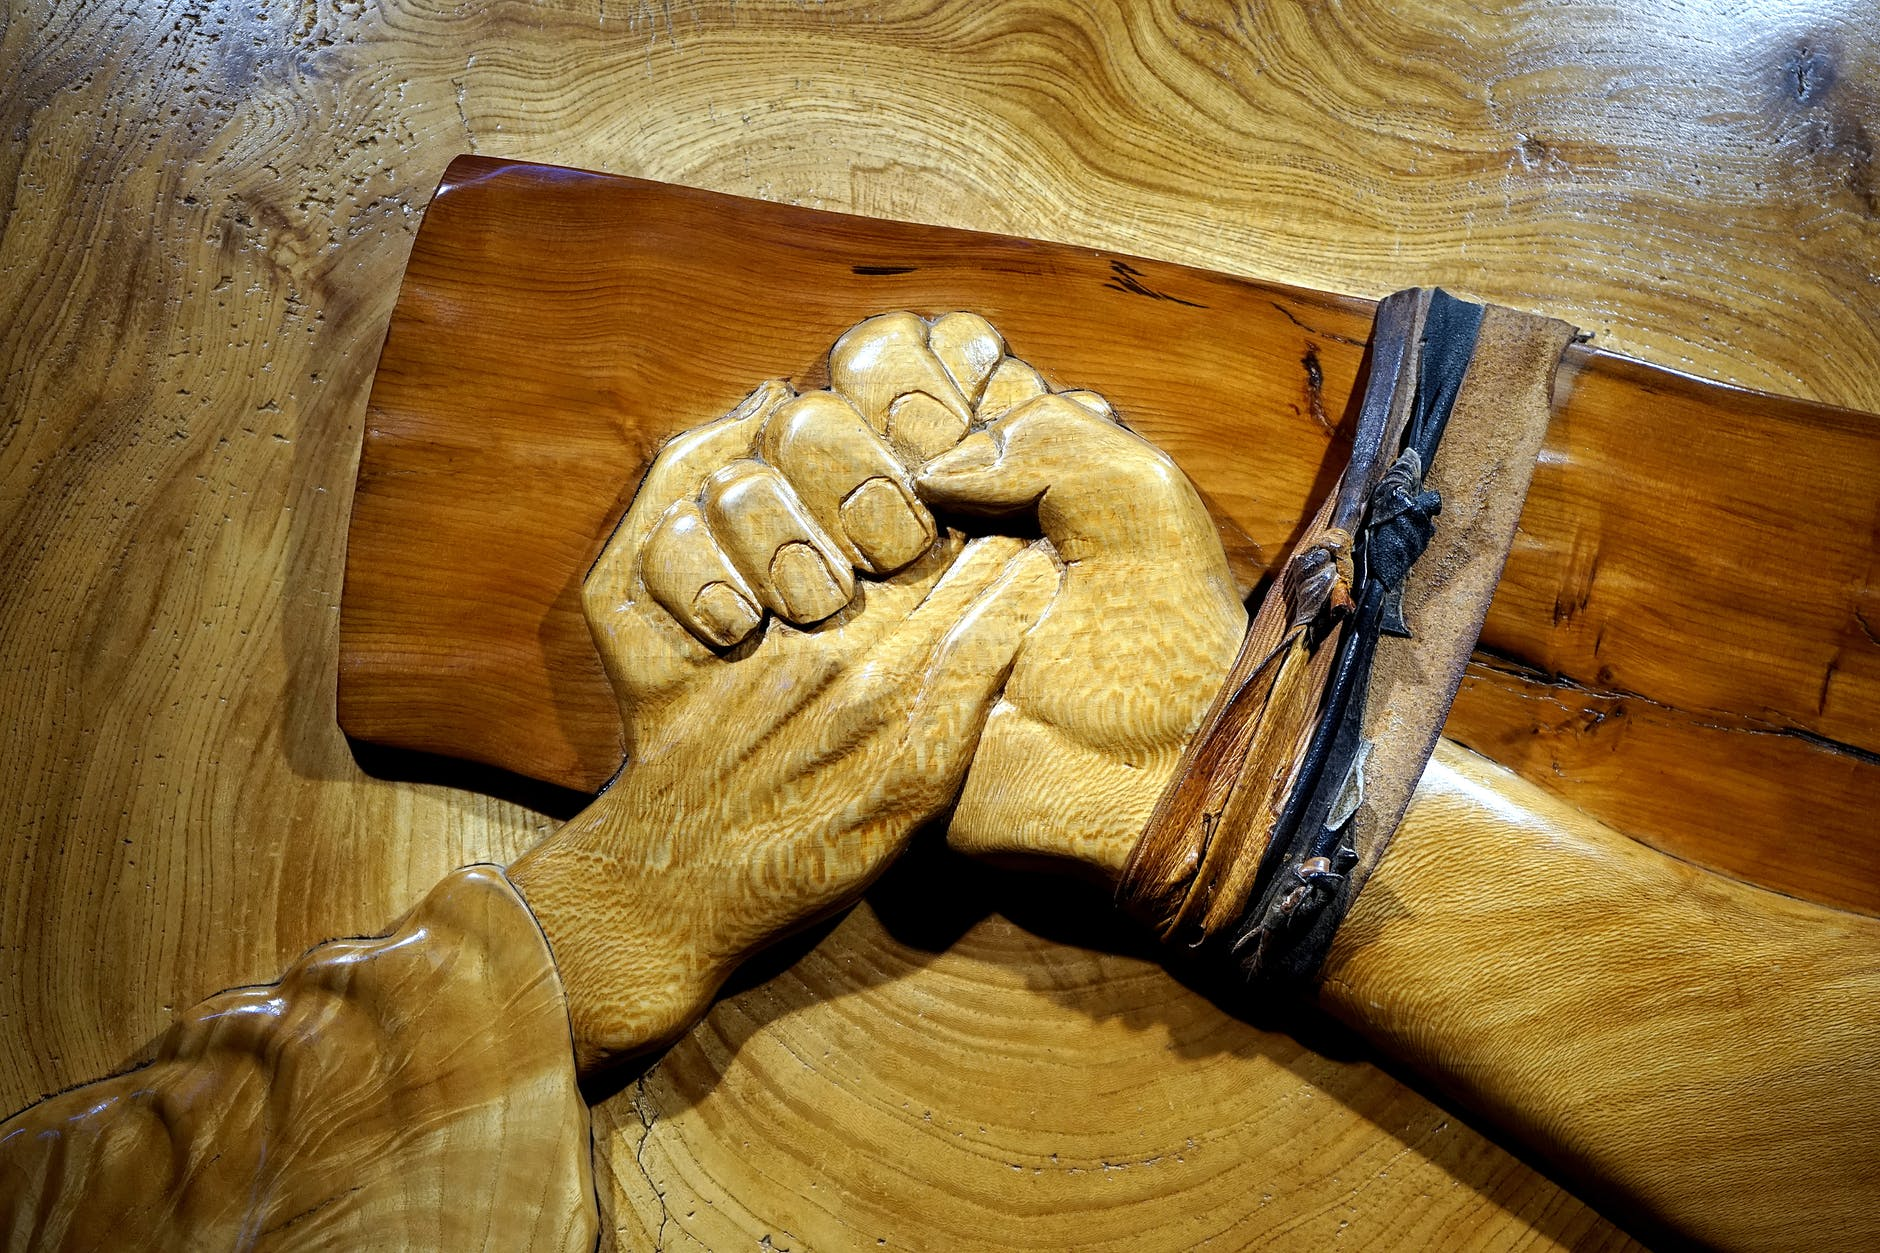 art board carpentry carved